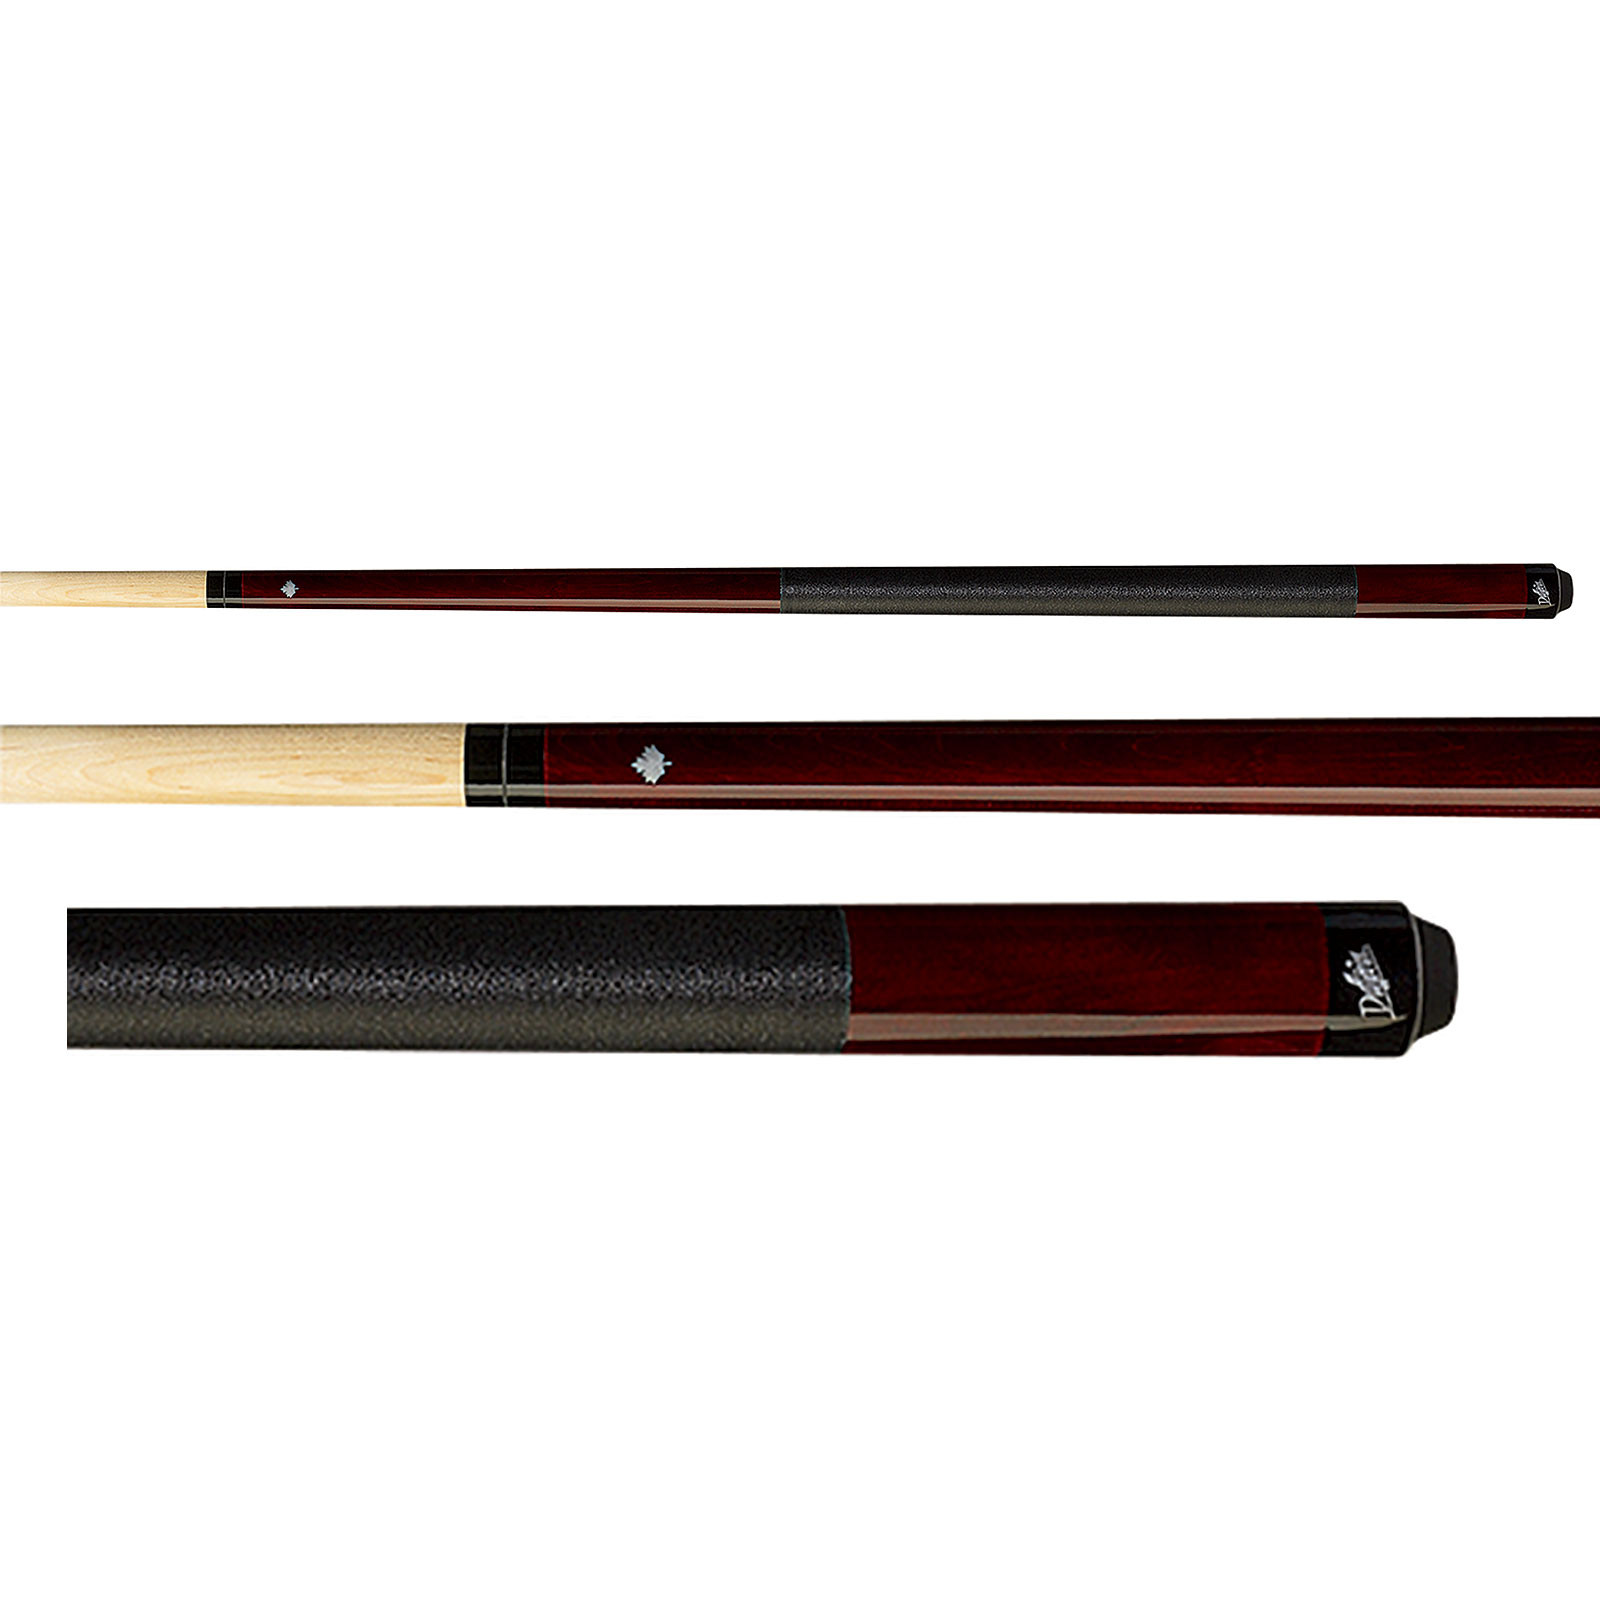 Dufferin D 231 Deep Oxblood Cue Stick